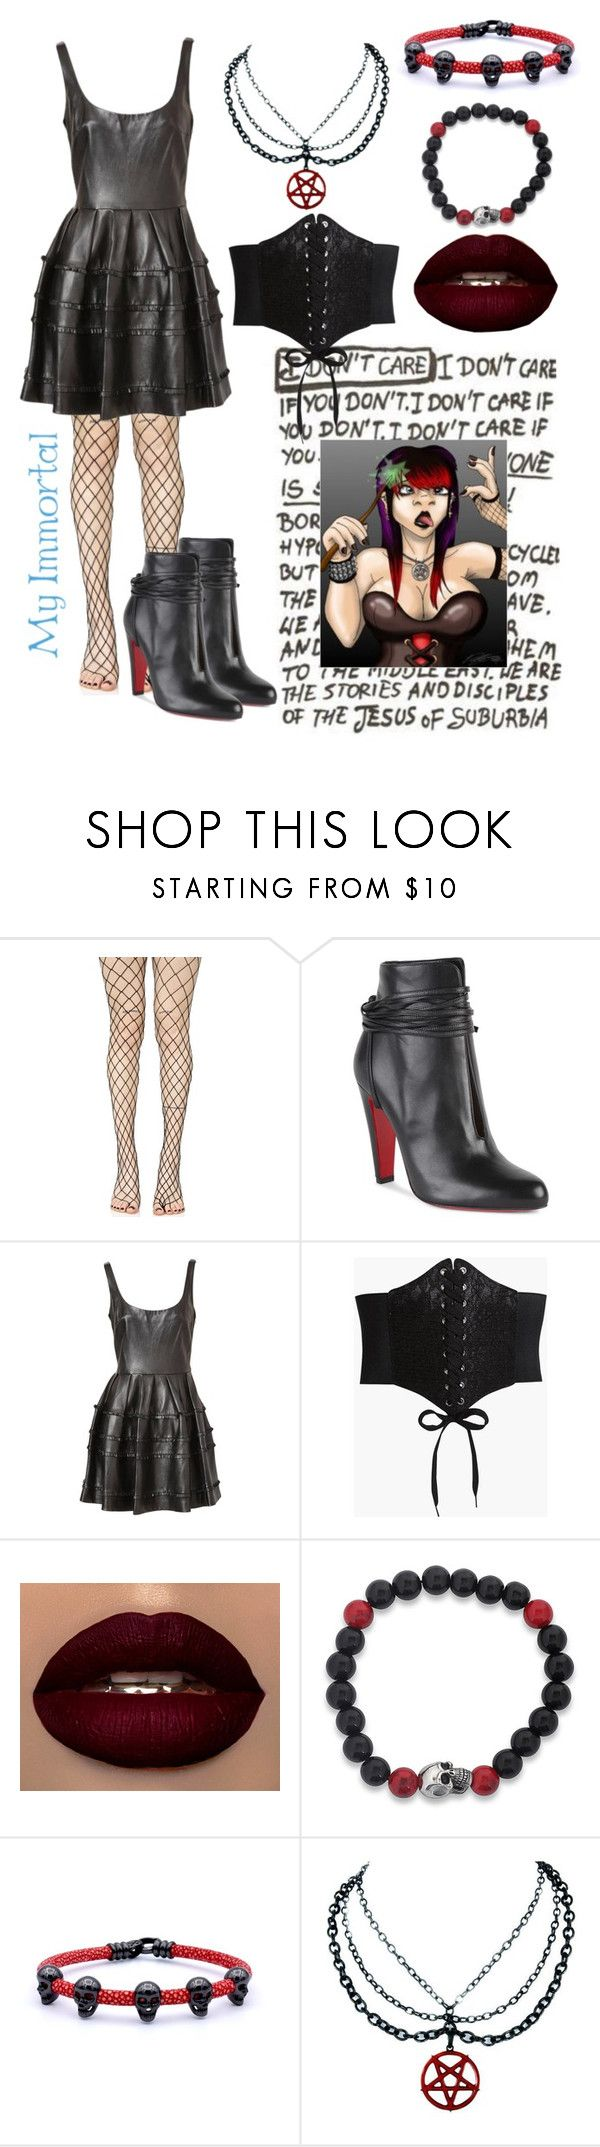 """My Immortal chap 12: Ebony Dark'ness Dementia Raven Way"" by just-a-dizzy-lizard ❤ liked on Polyvore featuring Leg Avenue, Christian Louboutin, Boohoo and West Coast Jewelry"